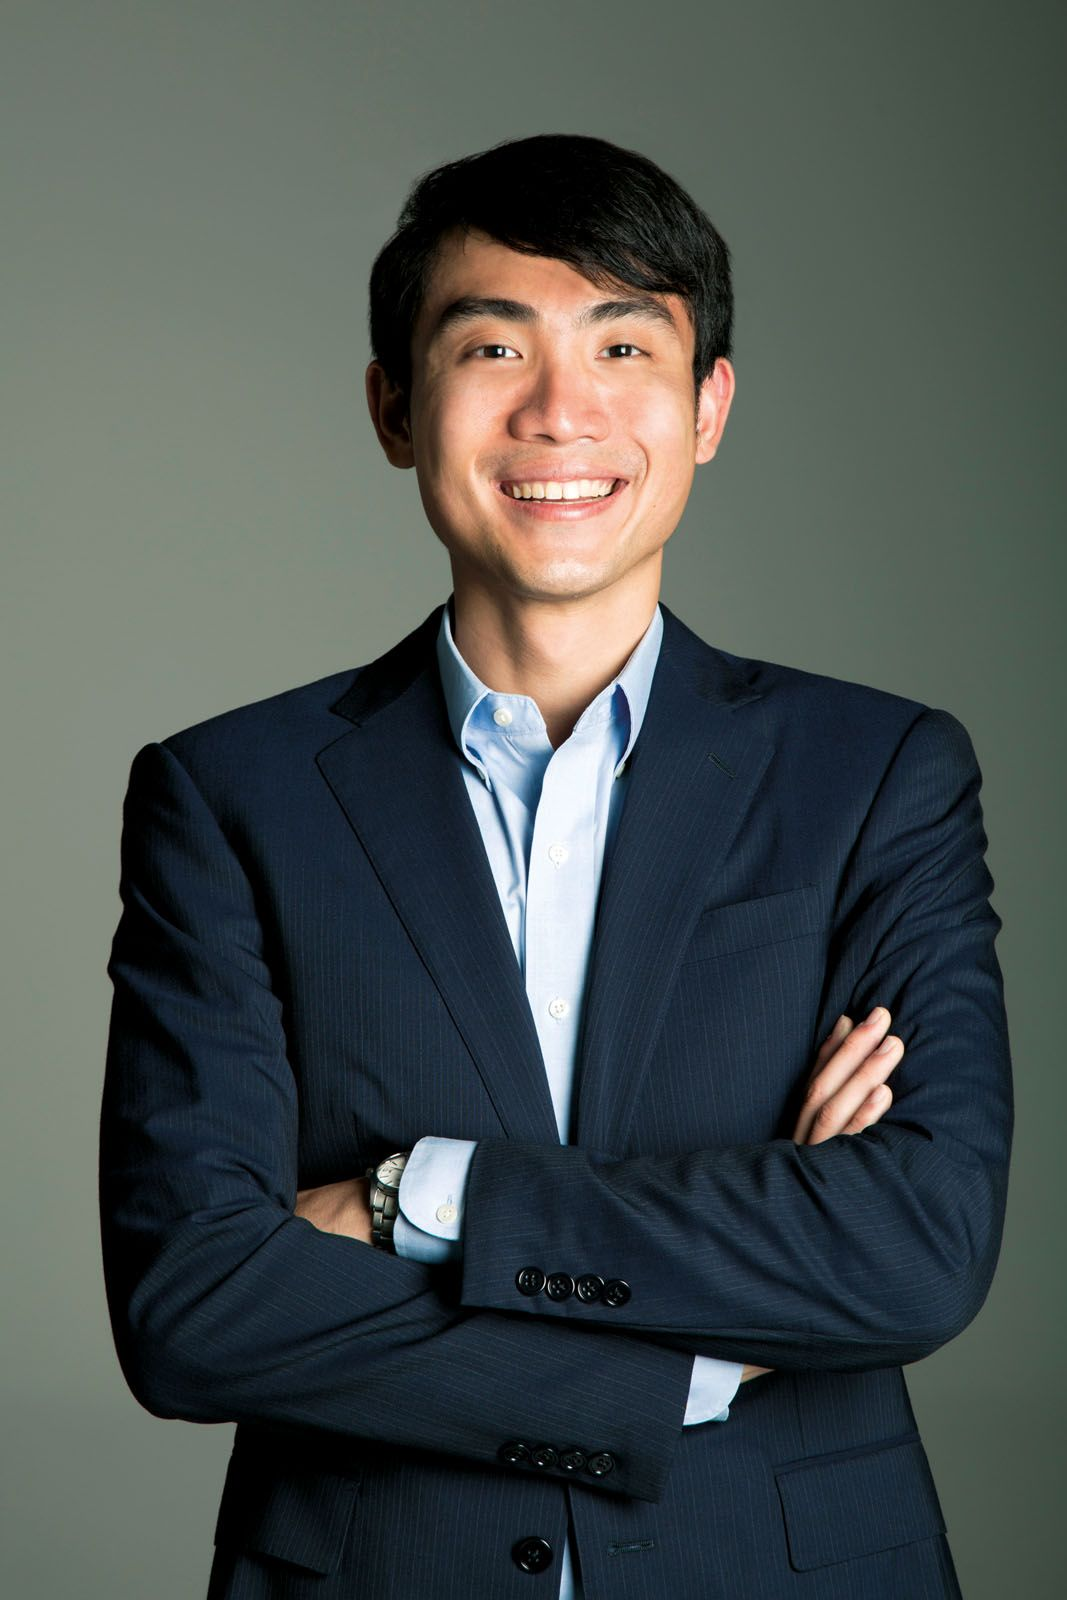 Social Entrepreneur Kevin Tan Is Determined To Make Social Impact Measurable, Sustainable And More Effective